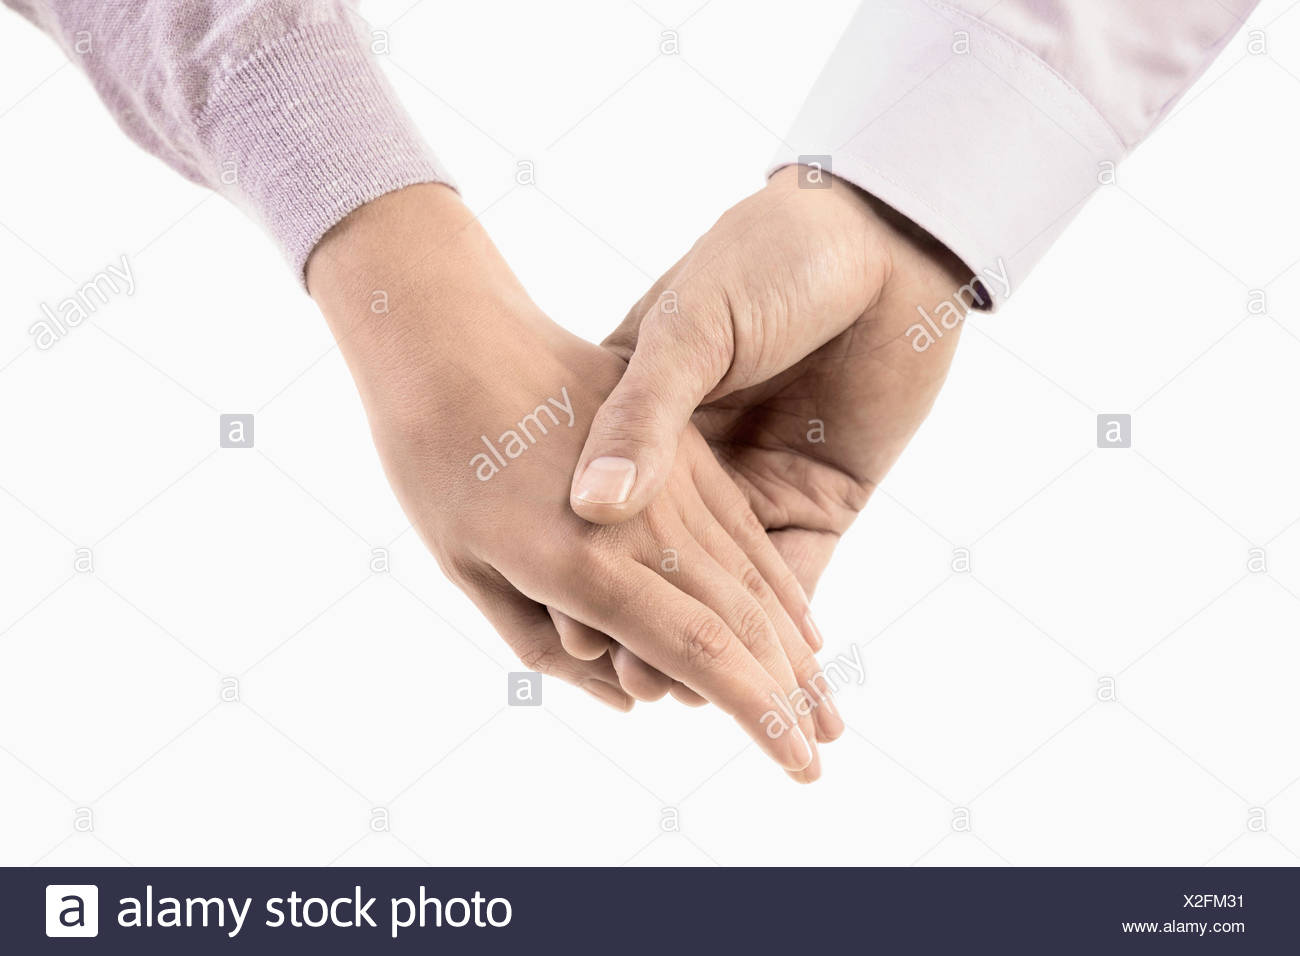 Close-up of man holding hand of woman, Bavaria, Germany - Stock Image